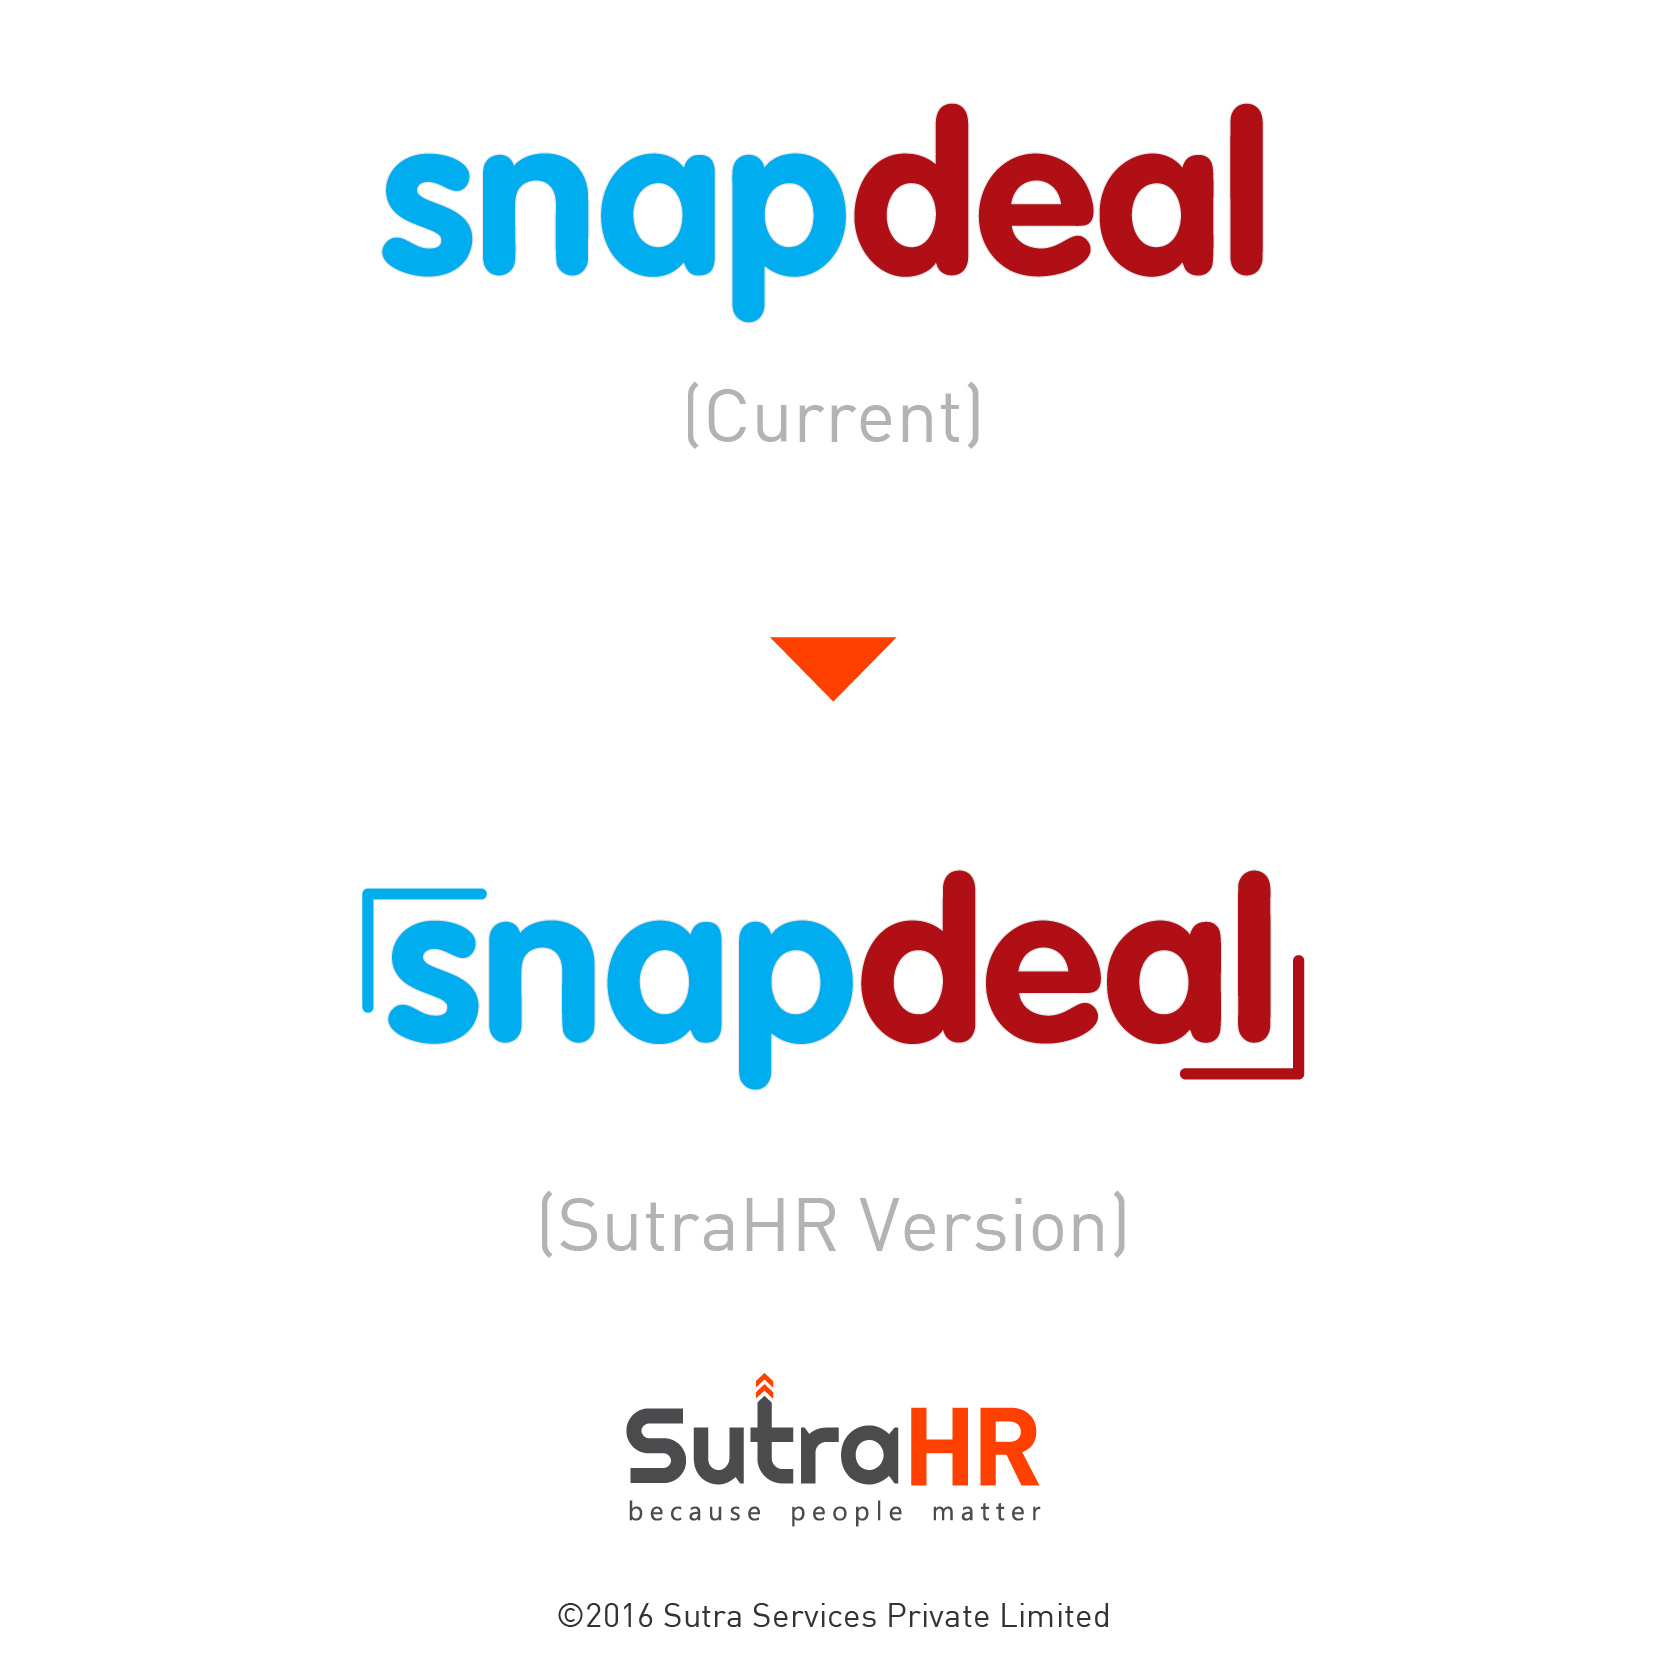 snapdeal startup logo redesigned